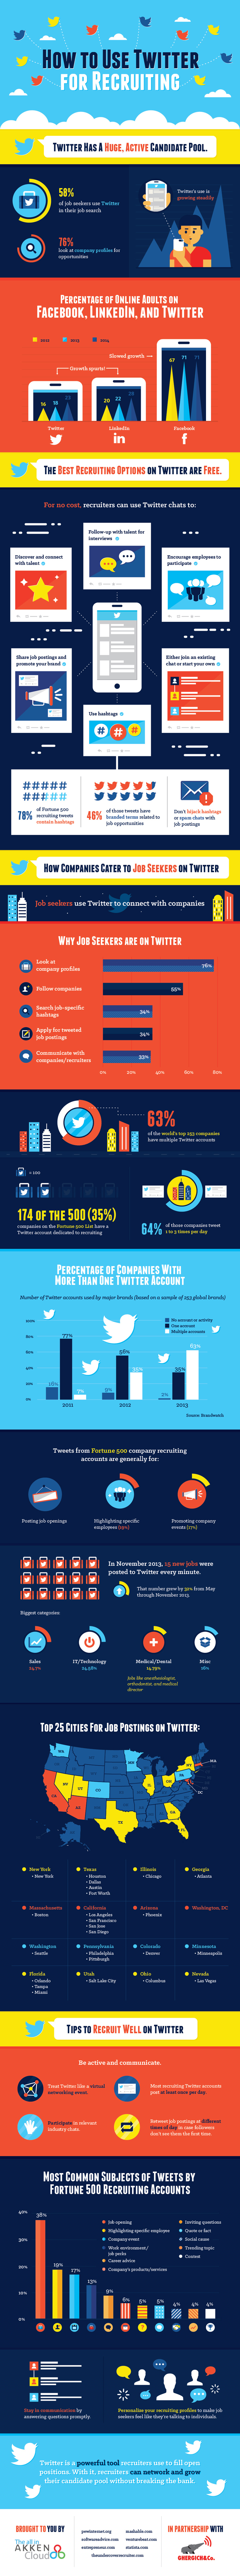 Twitter recruiting infographic